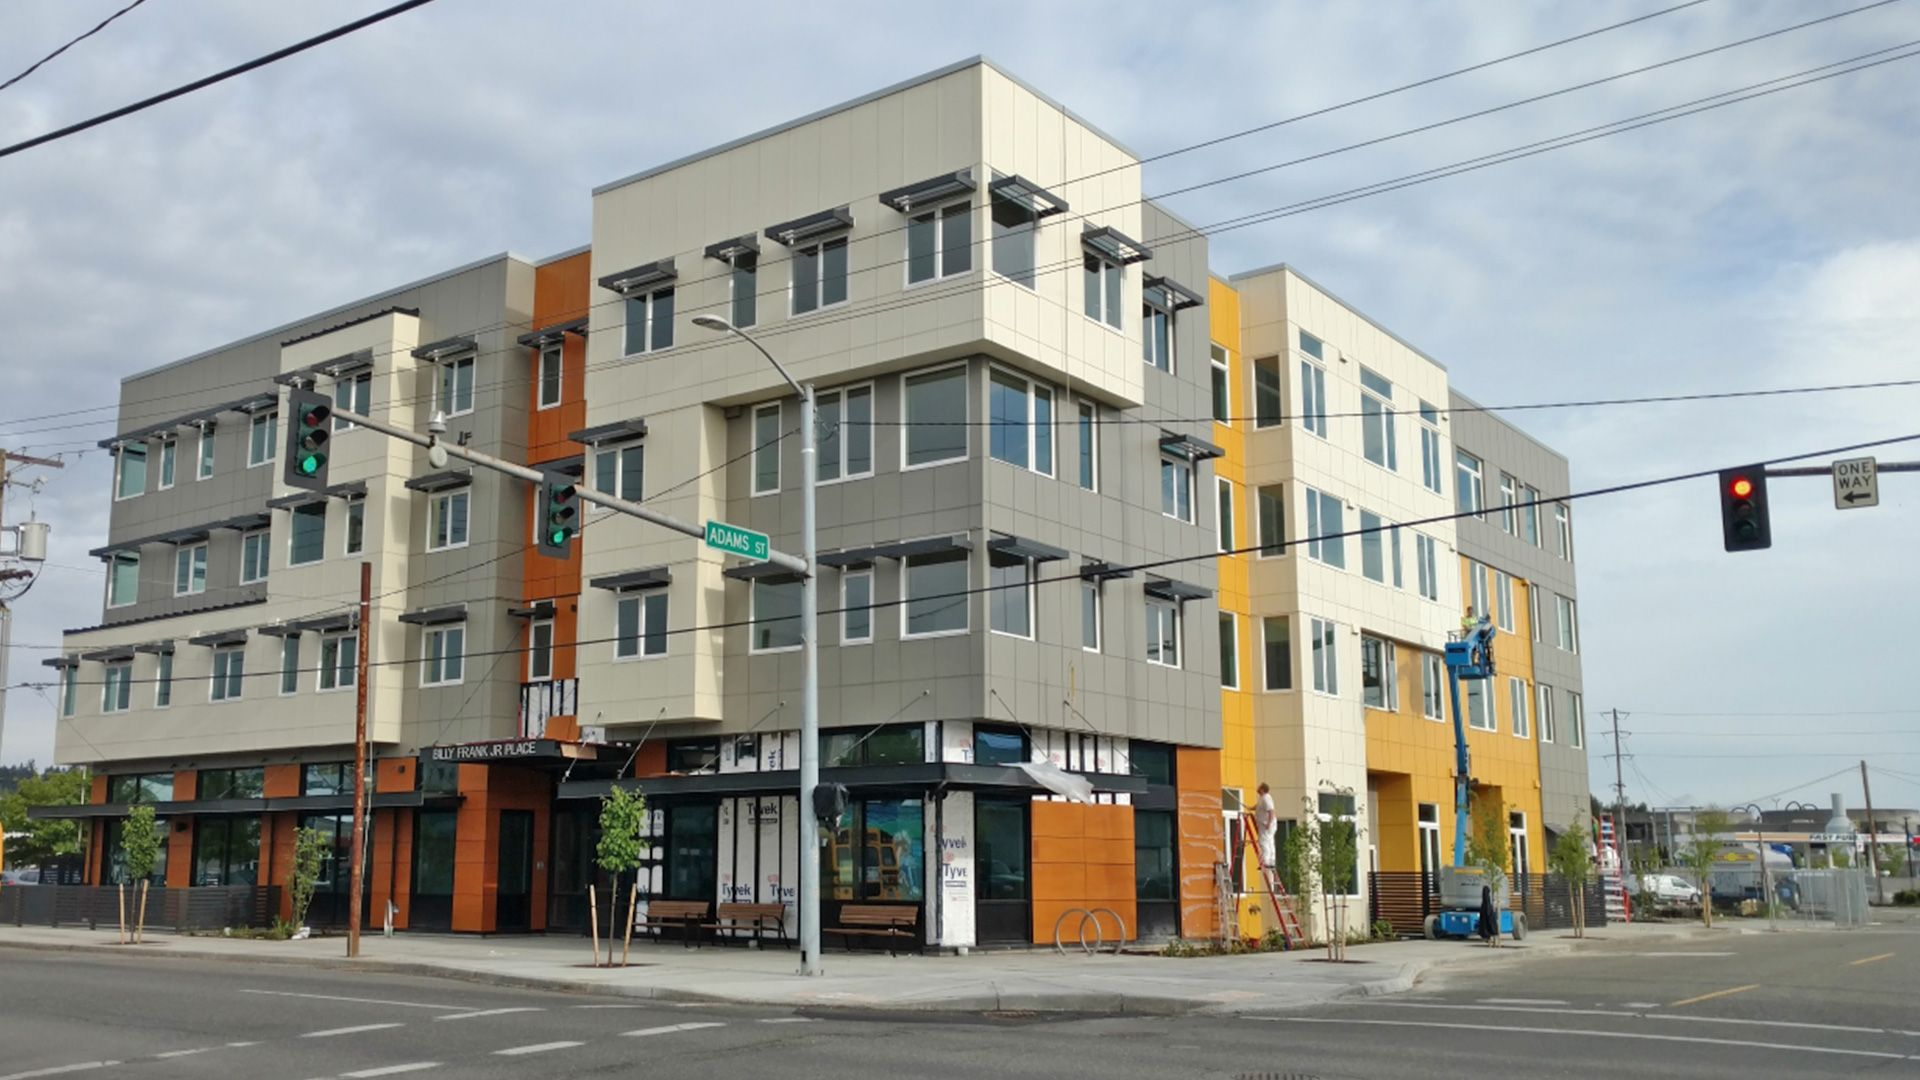 Billy frank jr place affordable housing swenson say fag t for Affordable home